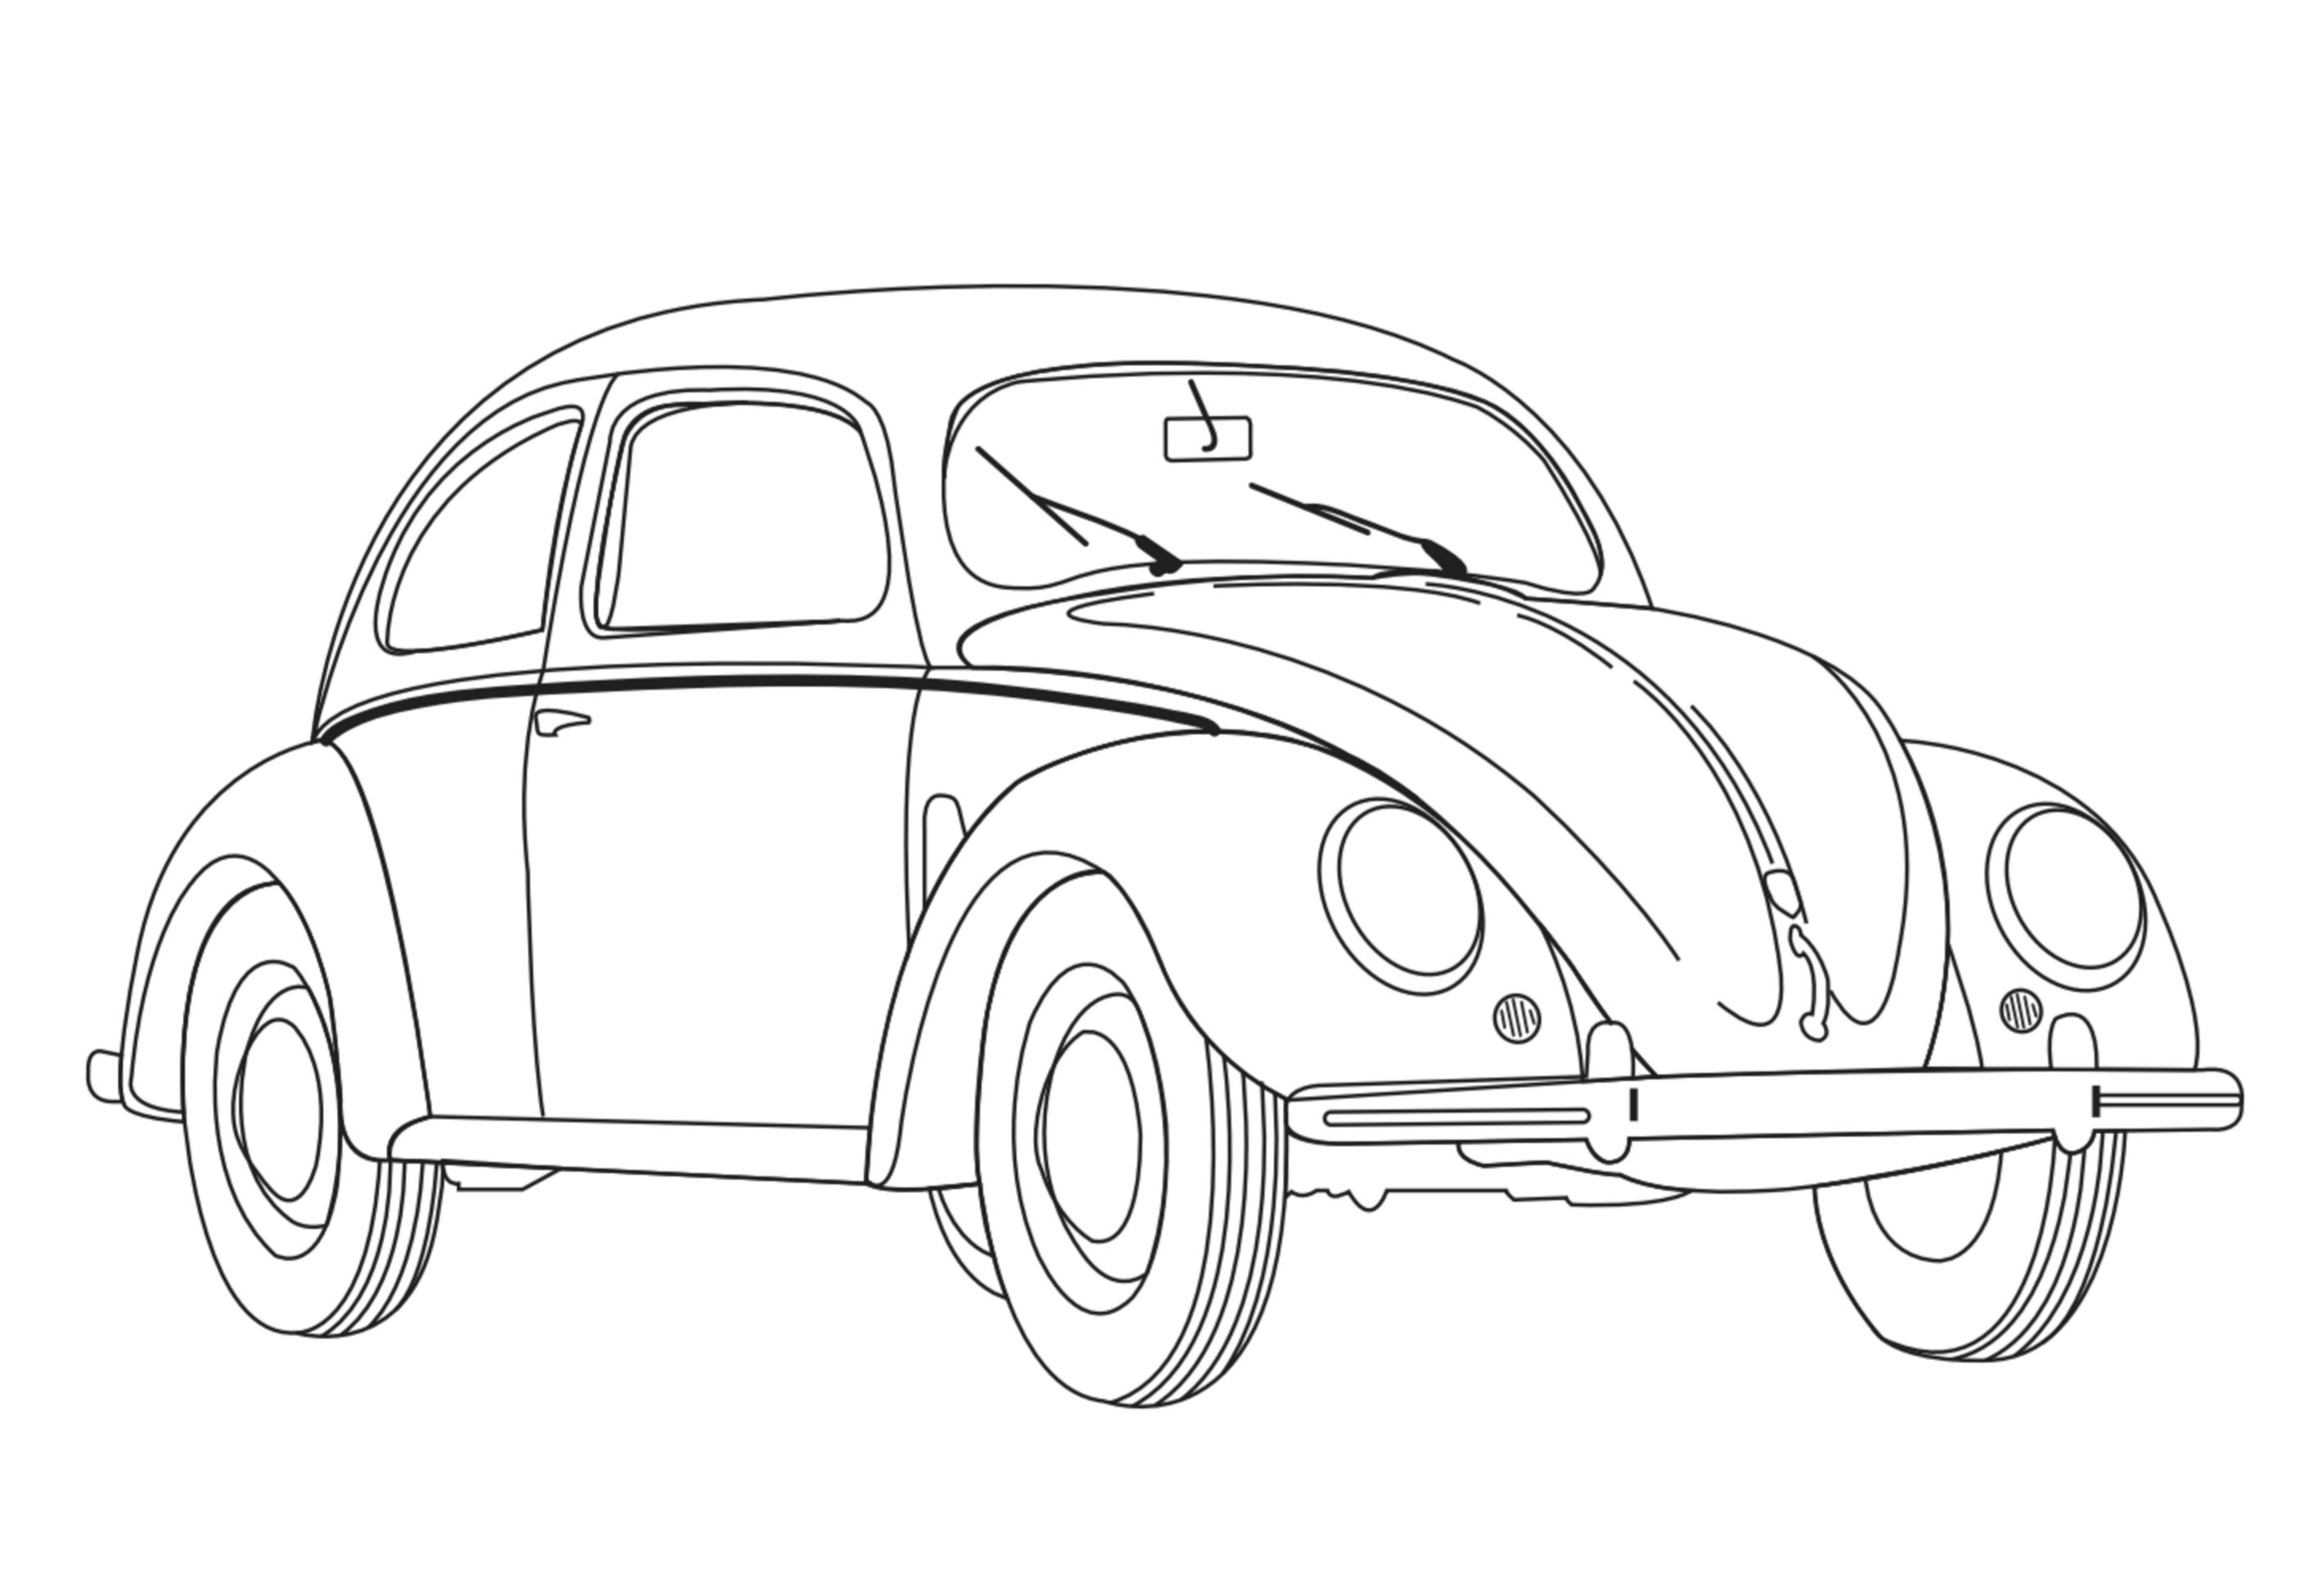 coloring cars for toddlers free printable race car coloring pages for kids cars for coloring toddlers